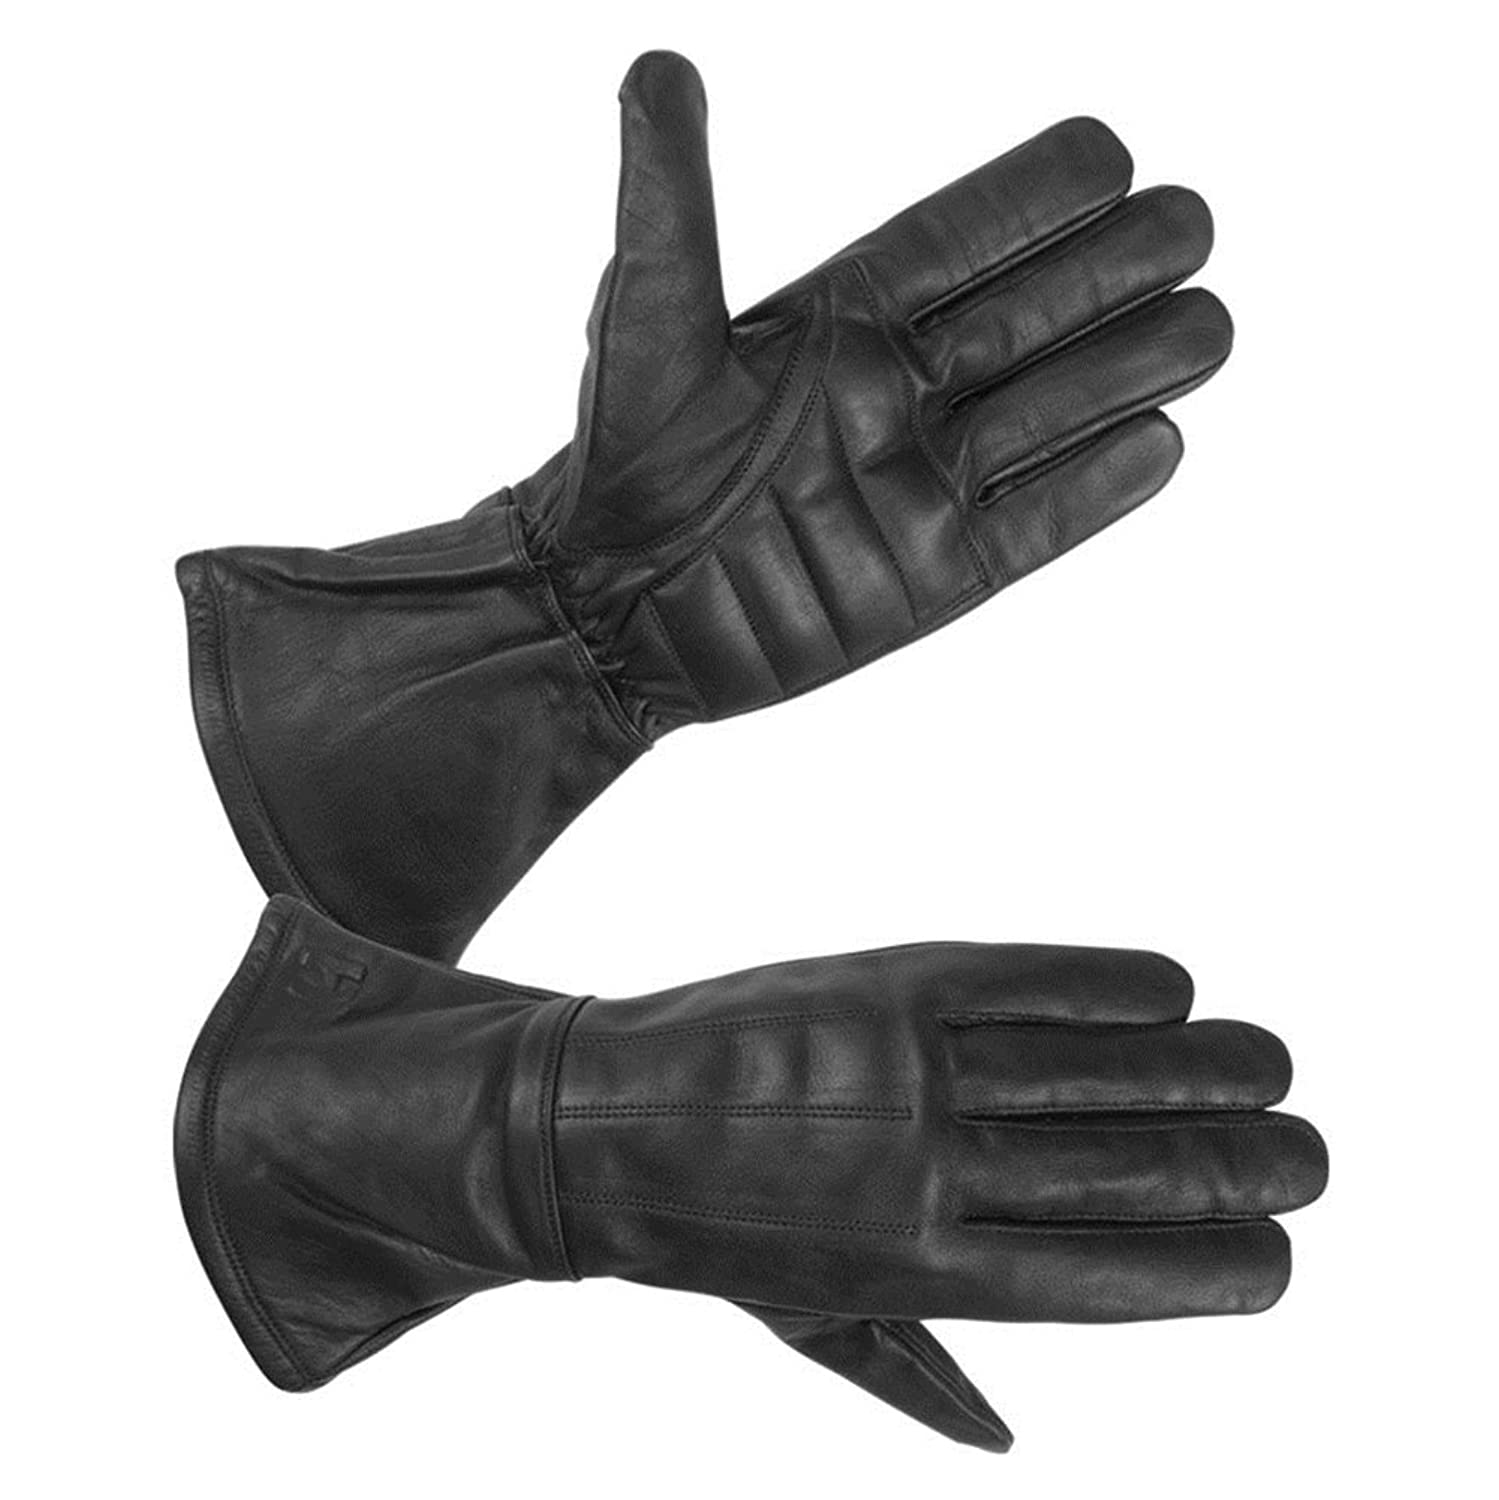 Leather gauntlet driving gloves - Cheap Men S Gauntlet Motorcycle Lined Water Resistant Leather Bike Riding Gloves